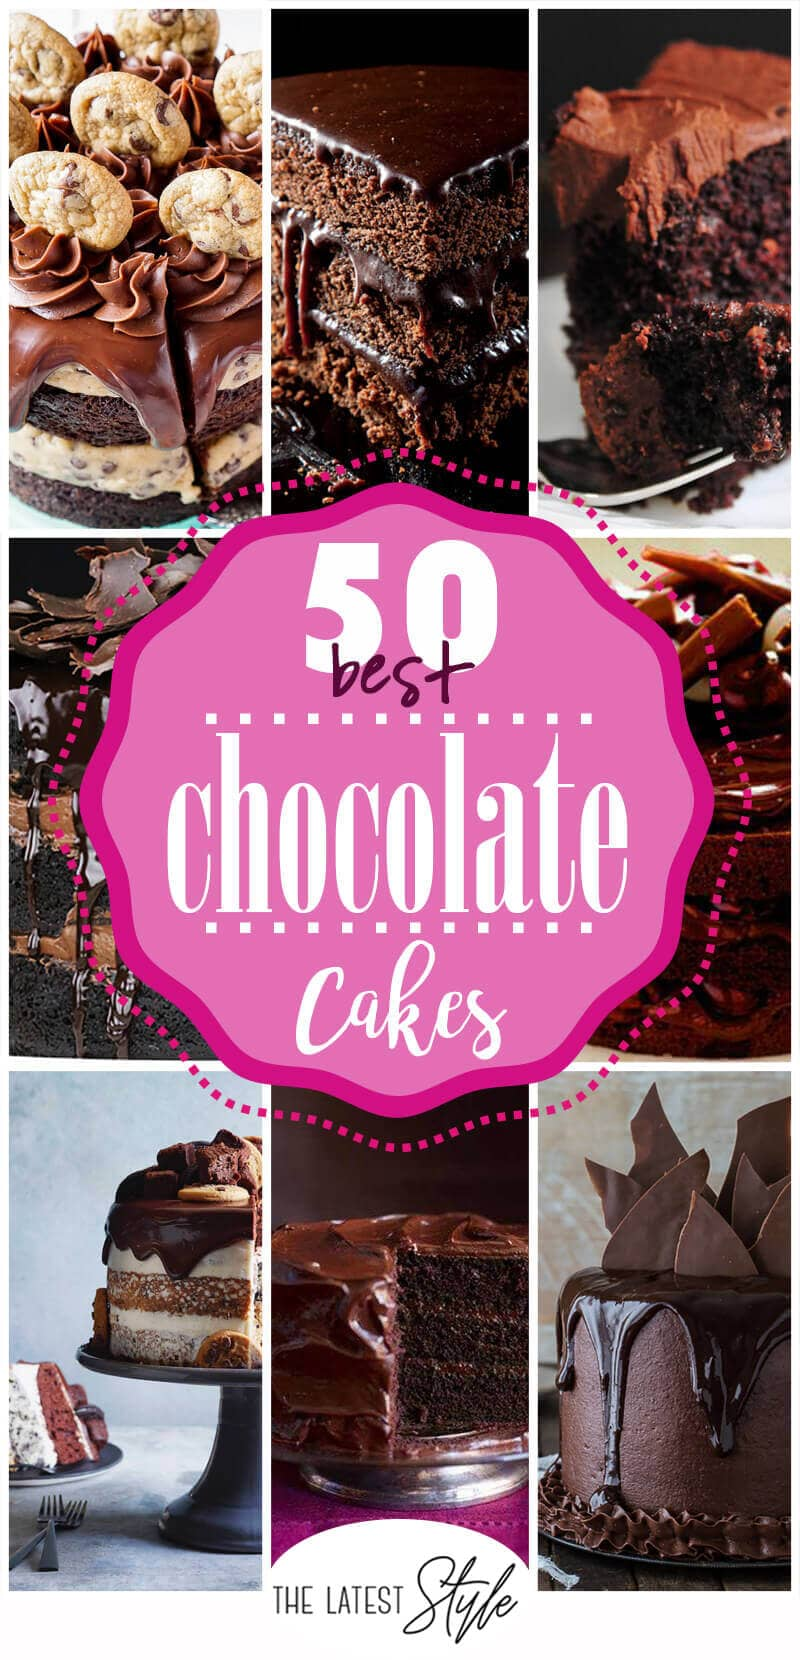 50 Chocolate Cake Recipes that are Simply Amazing